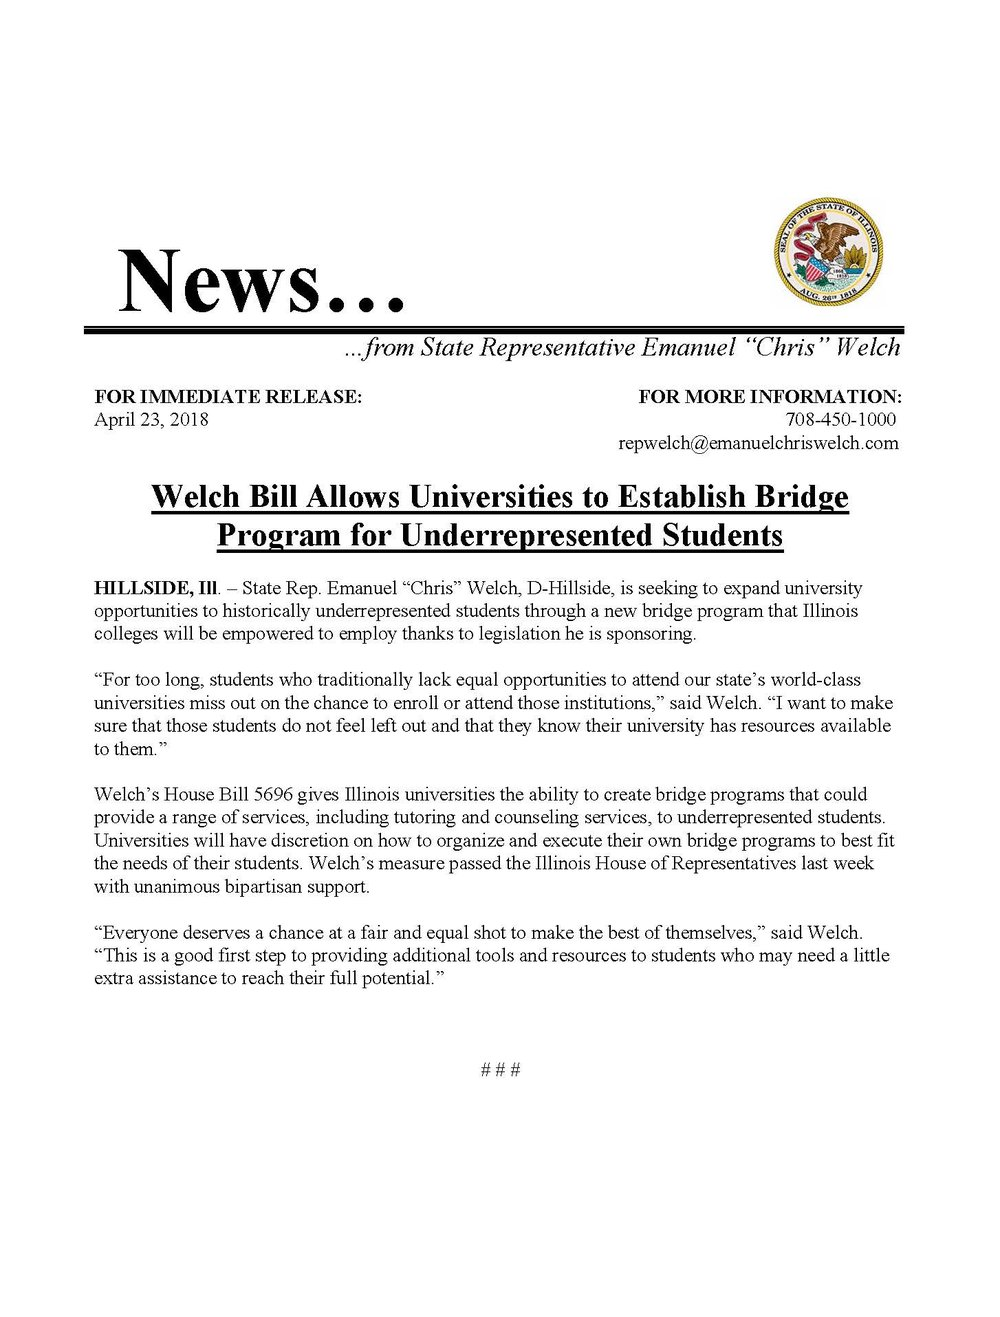 Welch Bill Allows Universities to Establish Bridge Program for Underrepresented Students  (April 23, 2018)